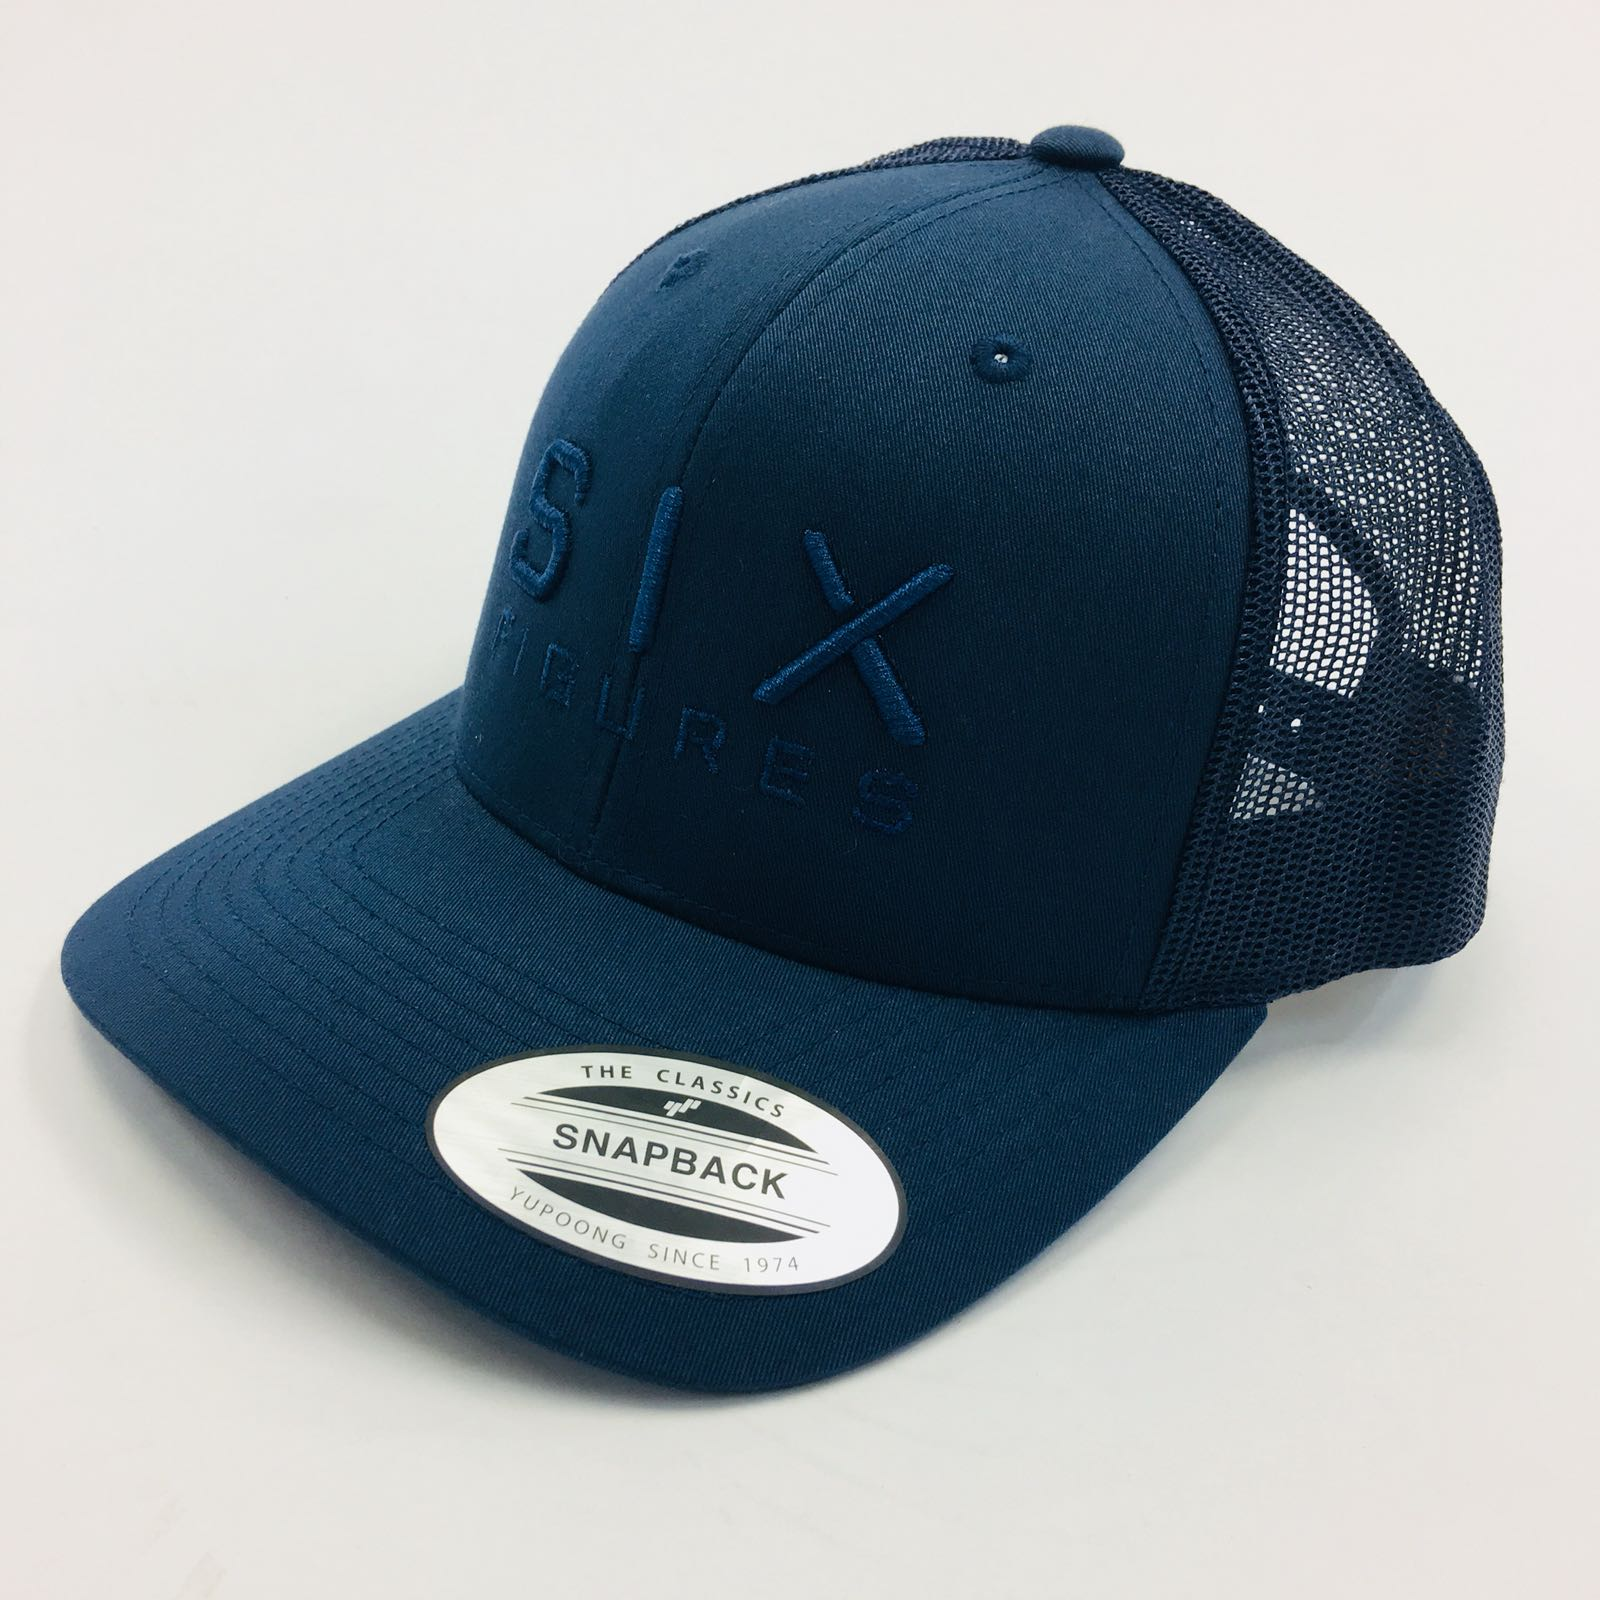 SIX FIGURES Trucker Cap - Navy + Navy - Six Figures Official